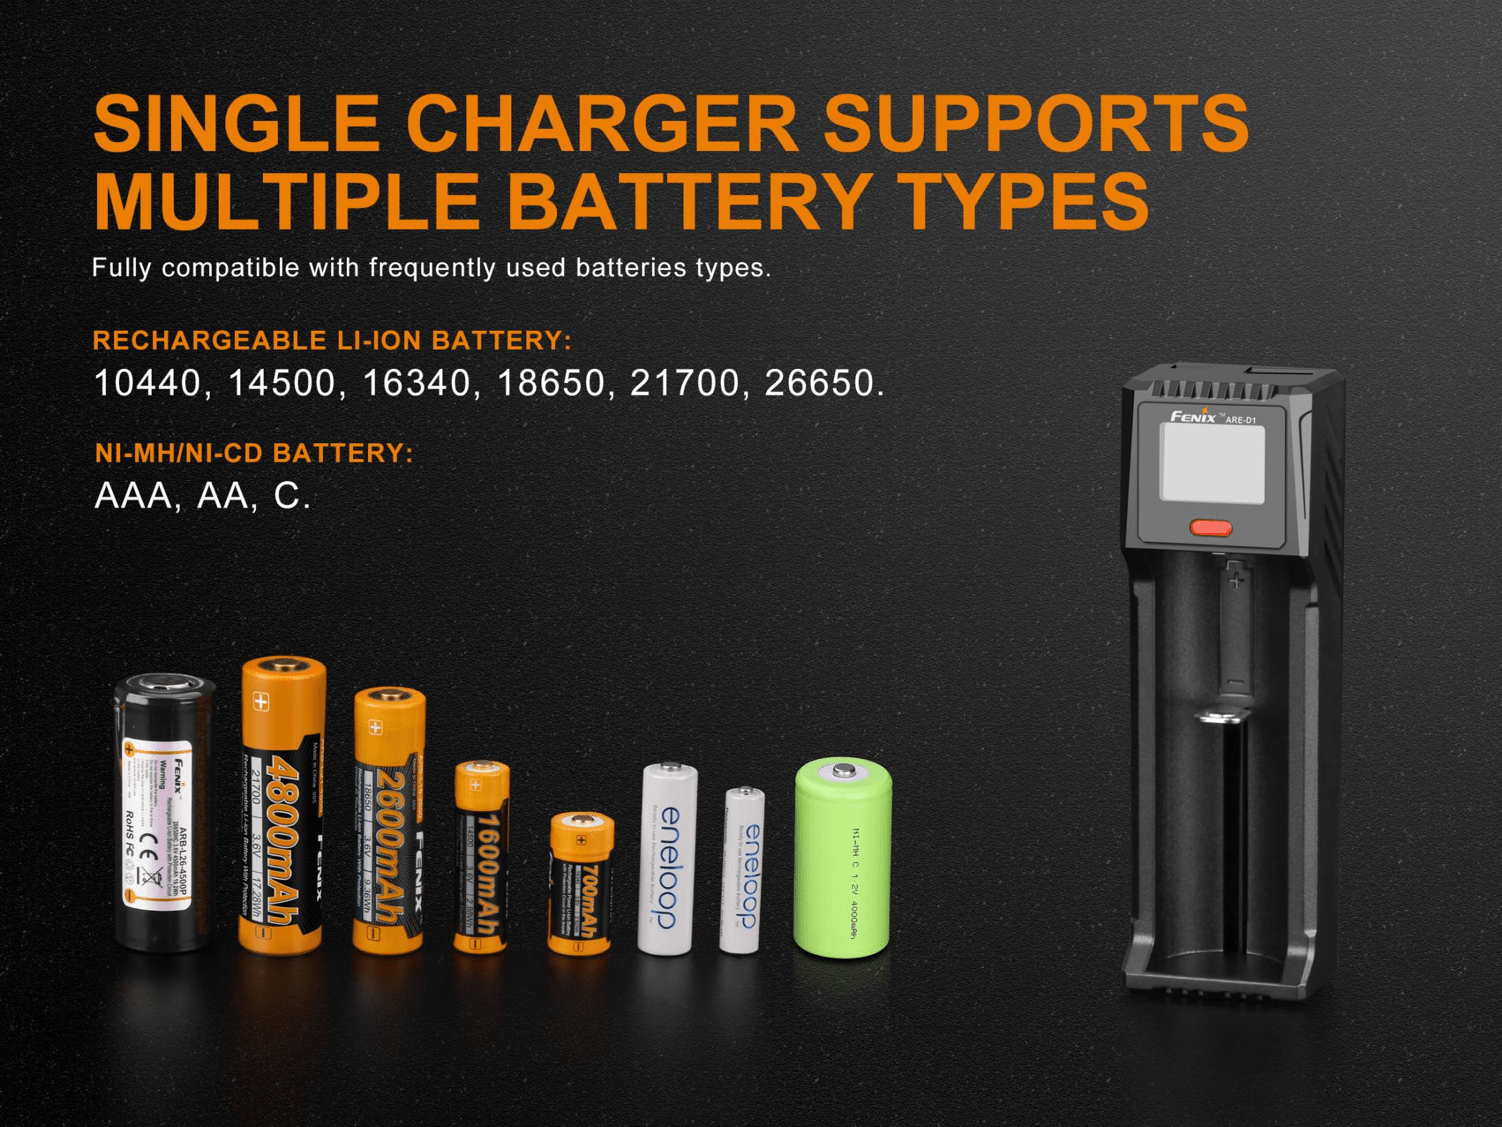 Fenix ARE D1 Single Slot/Channel Smart Battery Charger for Rechargeable Batteries, Charger with LCD Display, Compatible to Li-ion, NiMH and Ni-Cd, Charging and Discharging